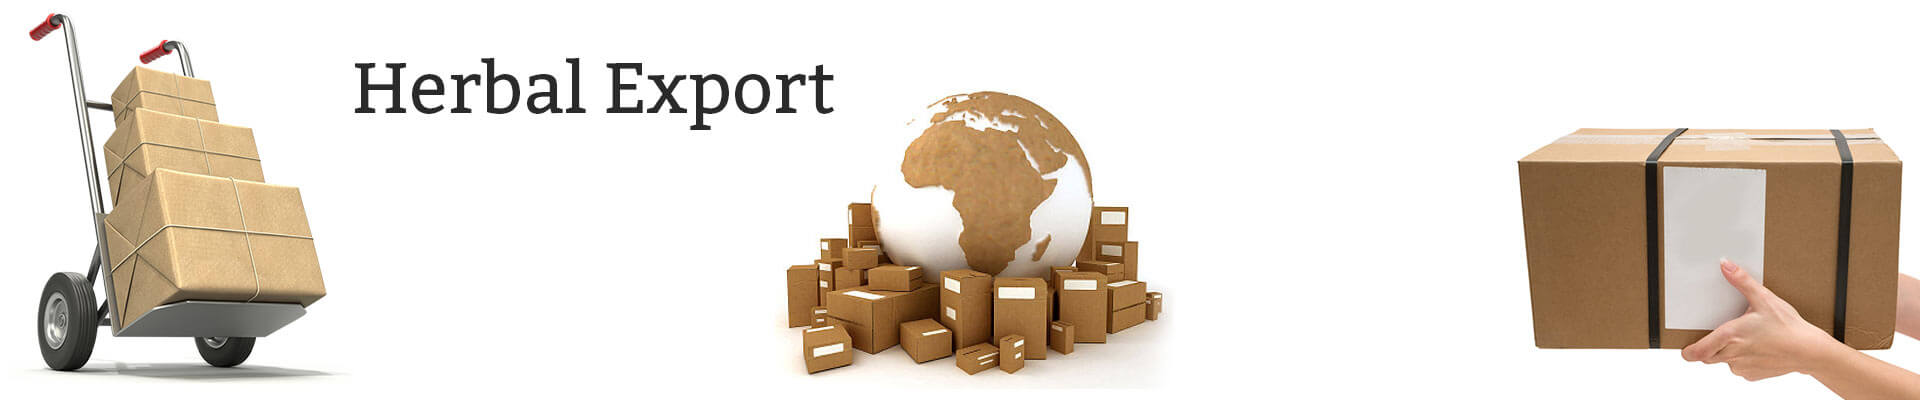 Herbal Products Exporter India, Private Label OEM Service